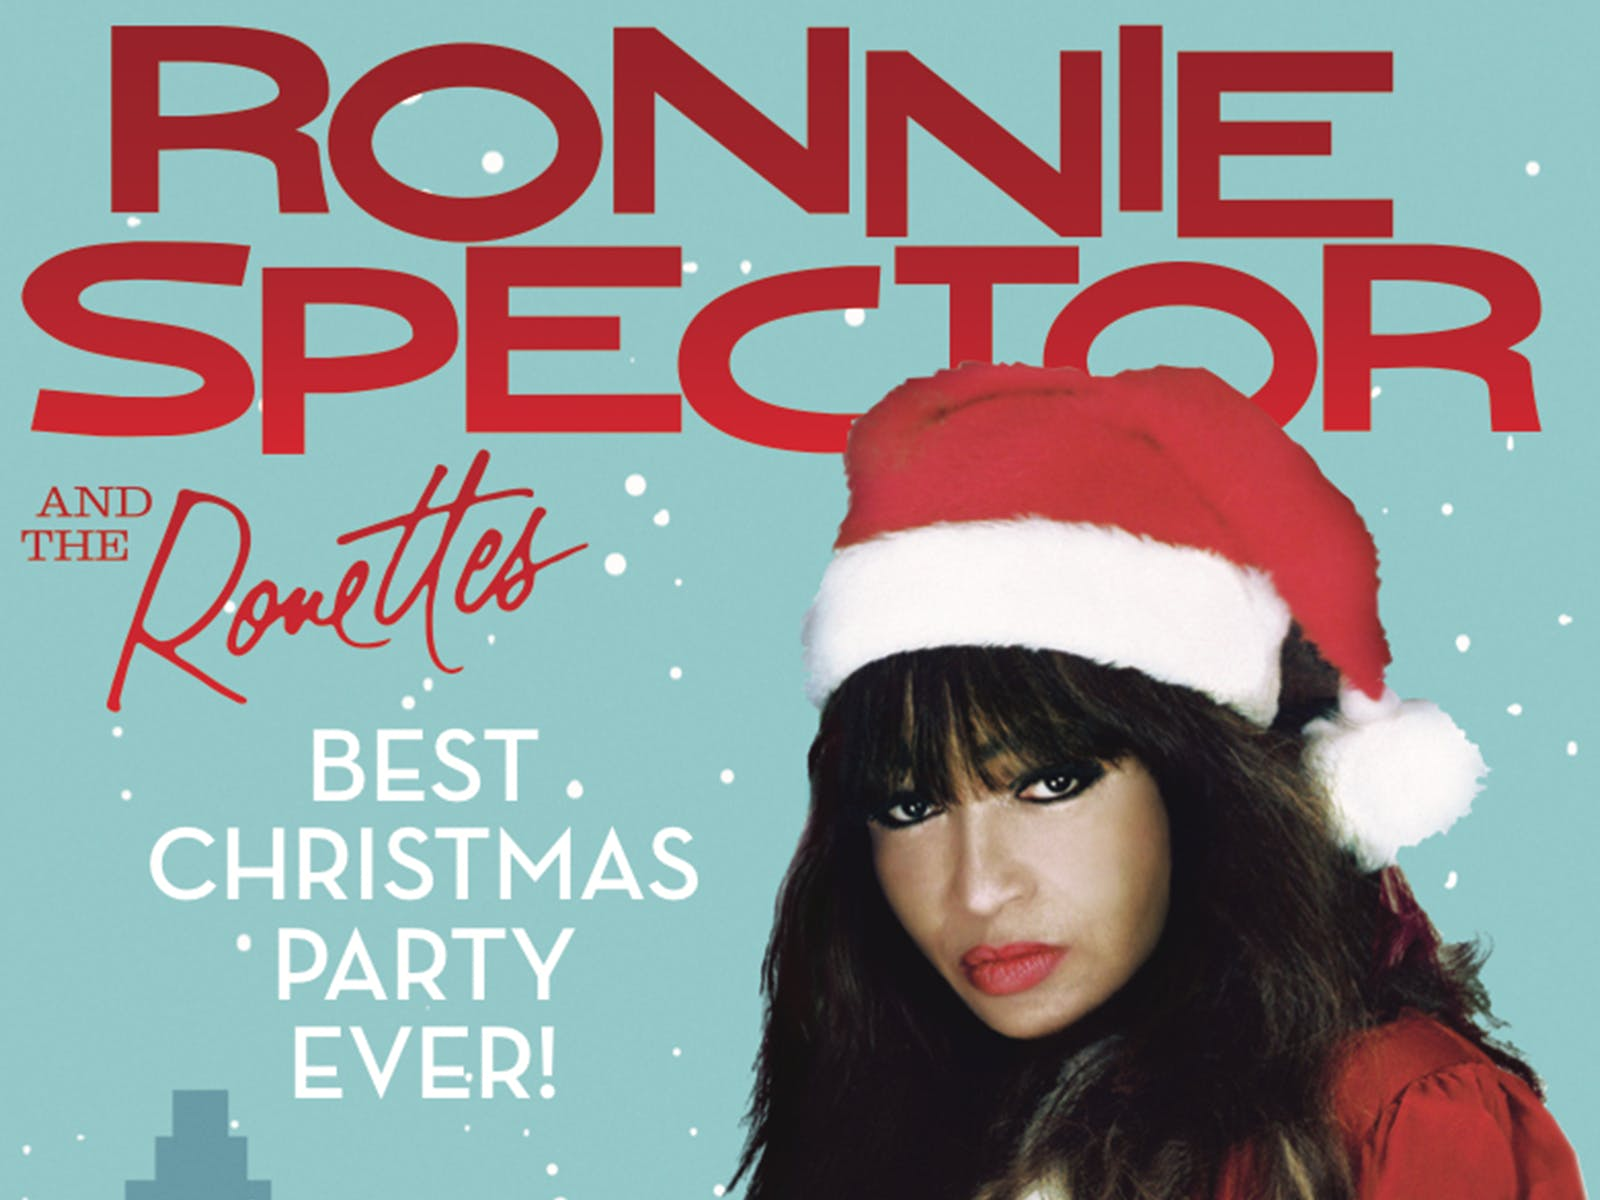 Best Christmas Party Ever.Ronnie Spector The Ronettes Tickets New York Todaytix